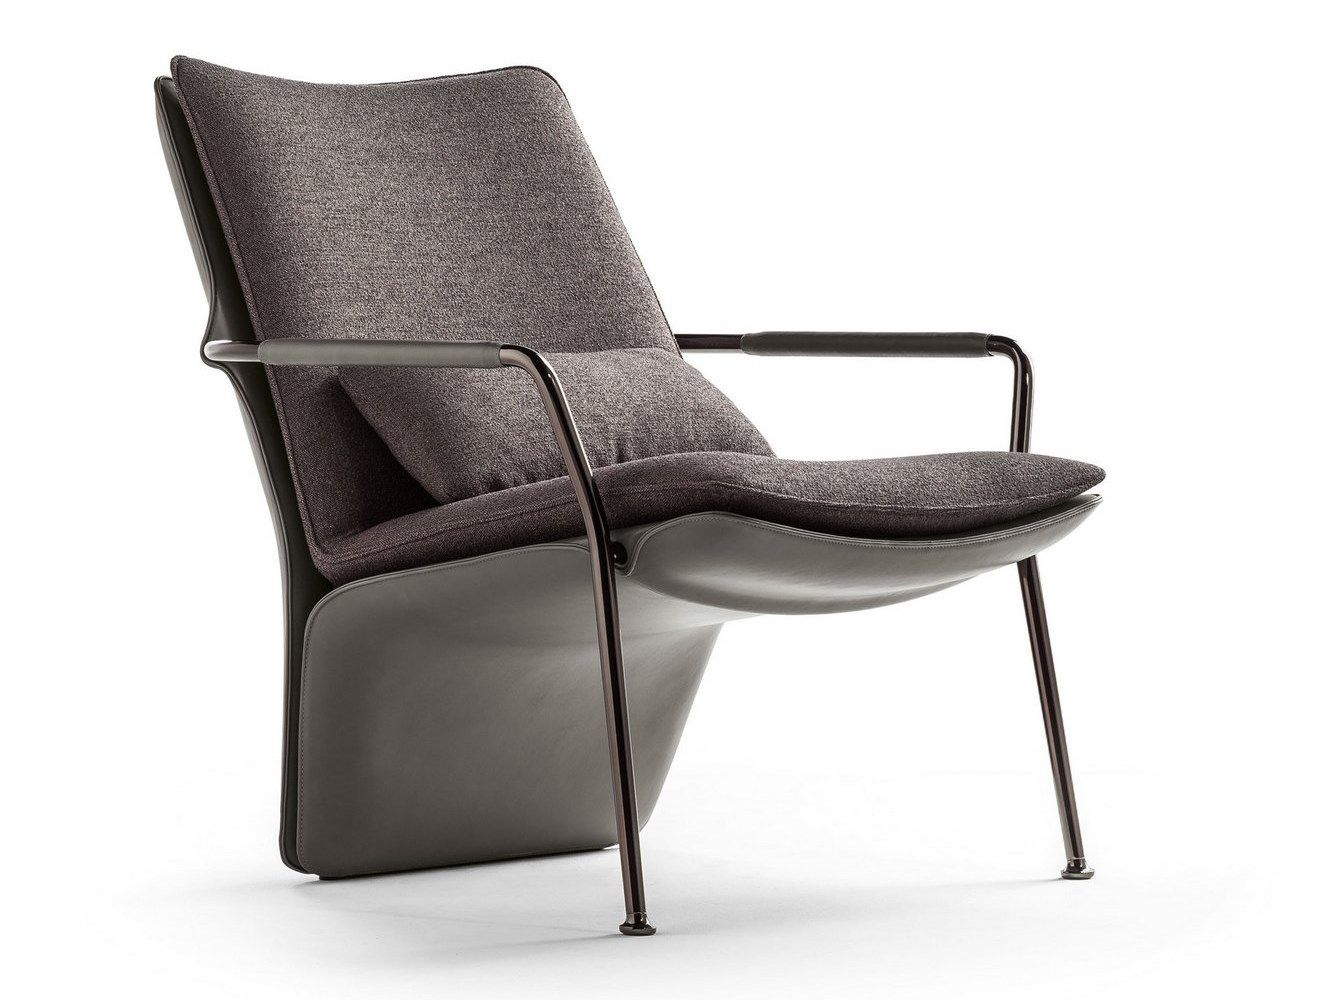 Poltrone Giorgetti Outlet Arabesque Armchair Armchair Leather Dining Room Chairs